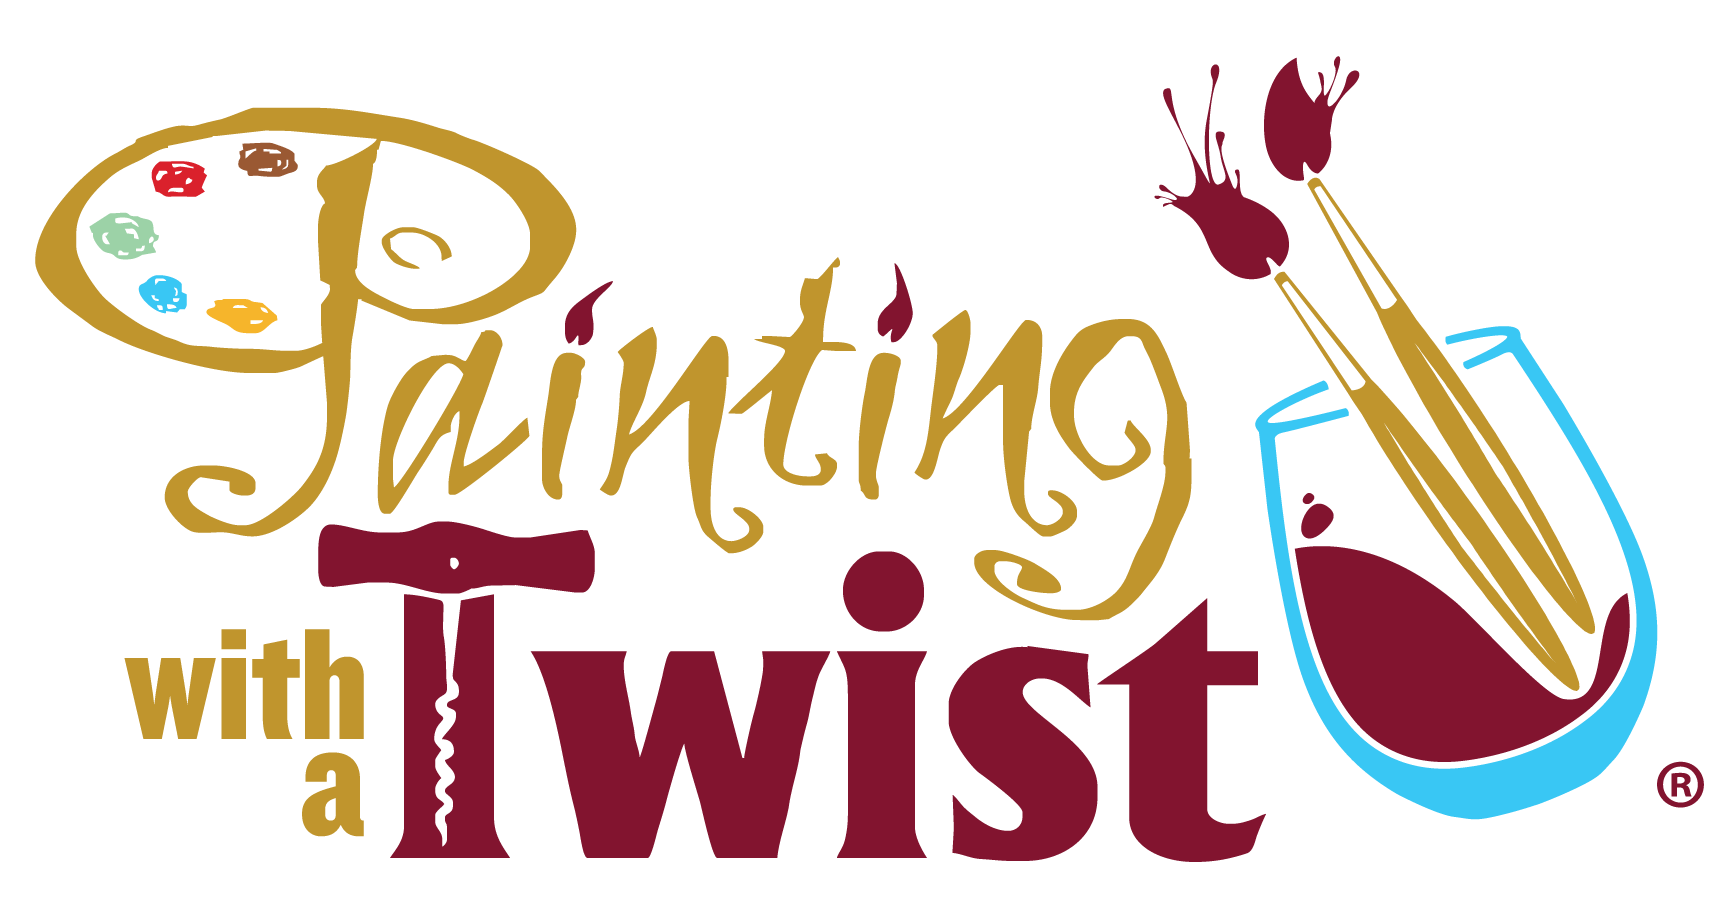 Paint clipart paint night. Painting with a twist